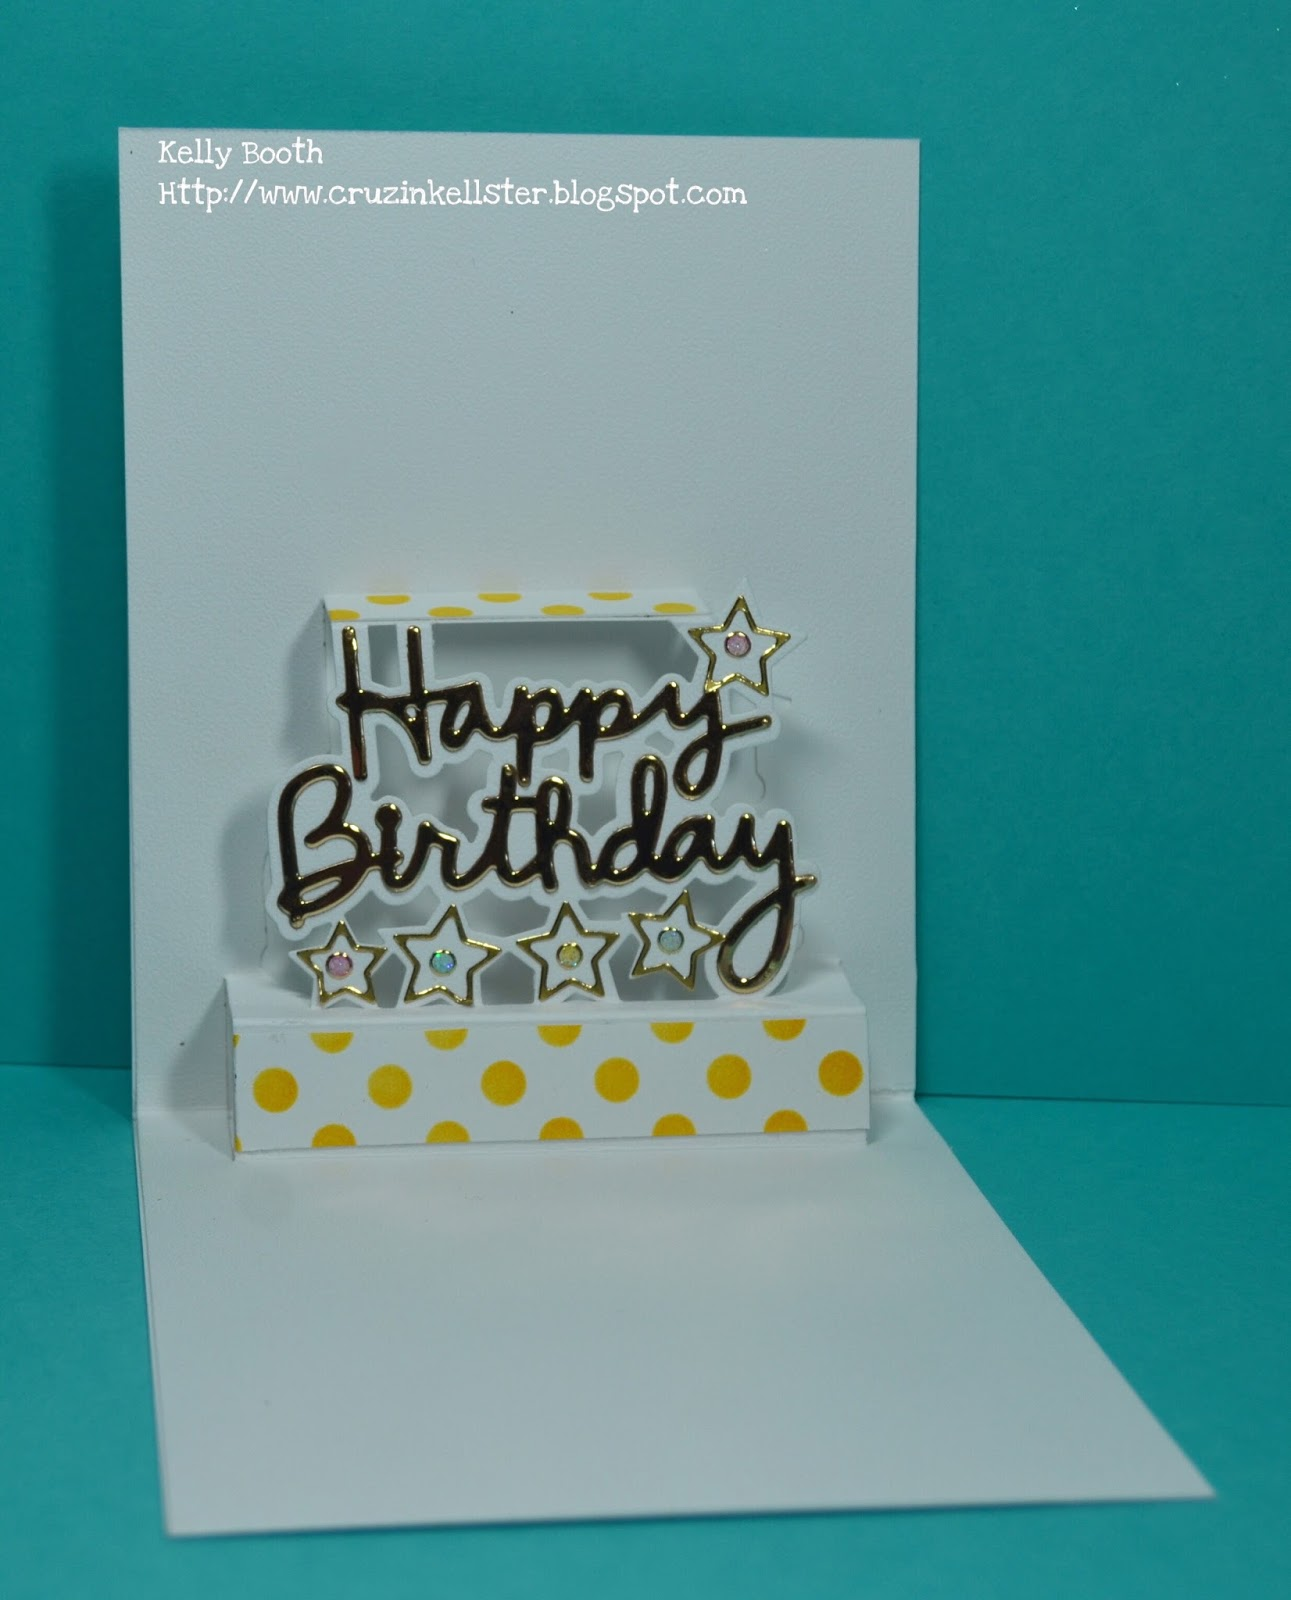 off color birthday cards ; Watermarked%252BPhoto%252B%2525282015-10-22-1434%252529